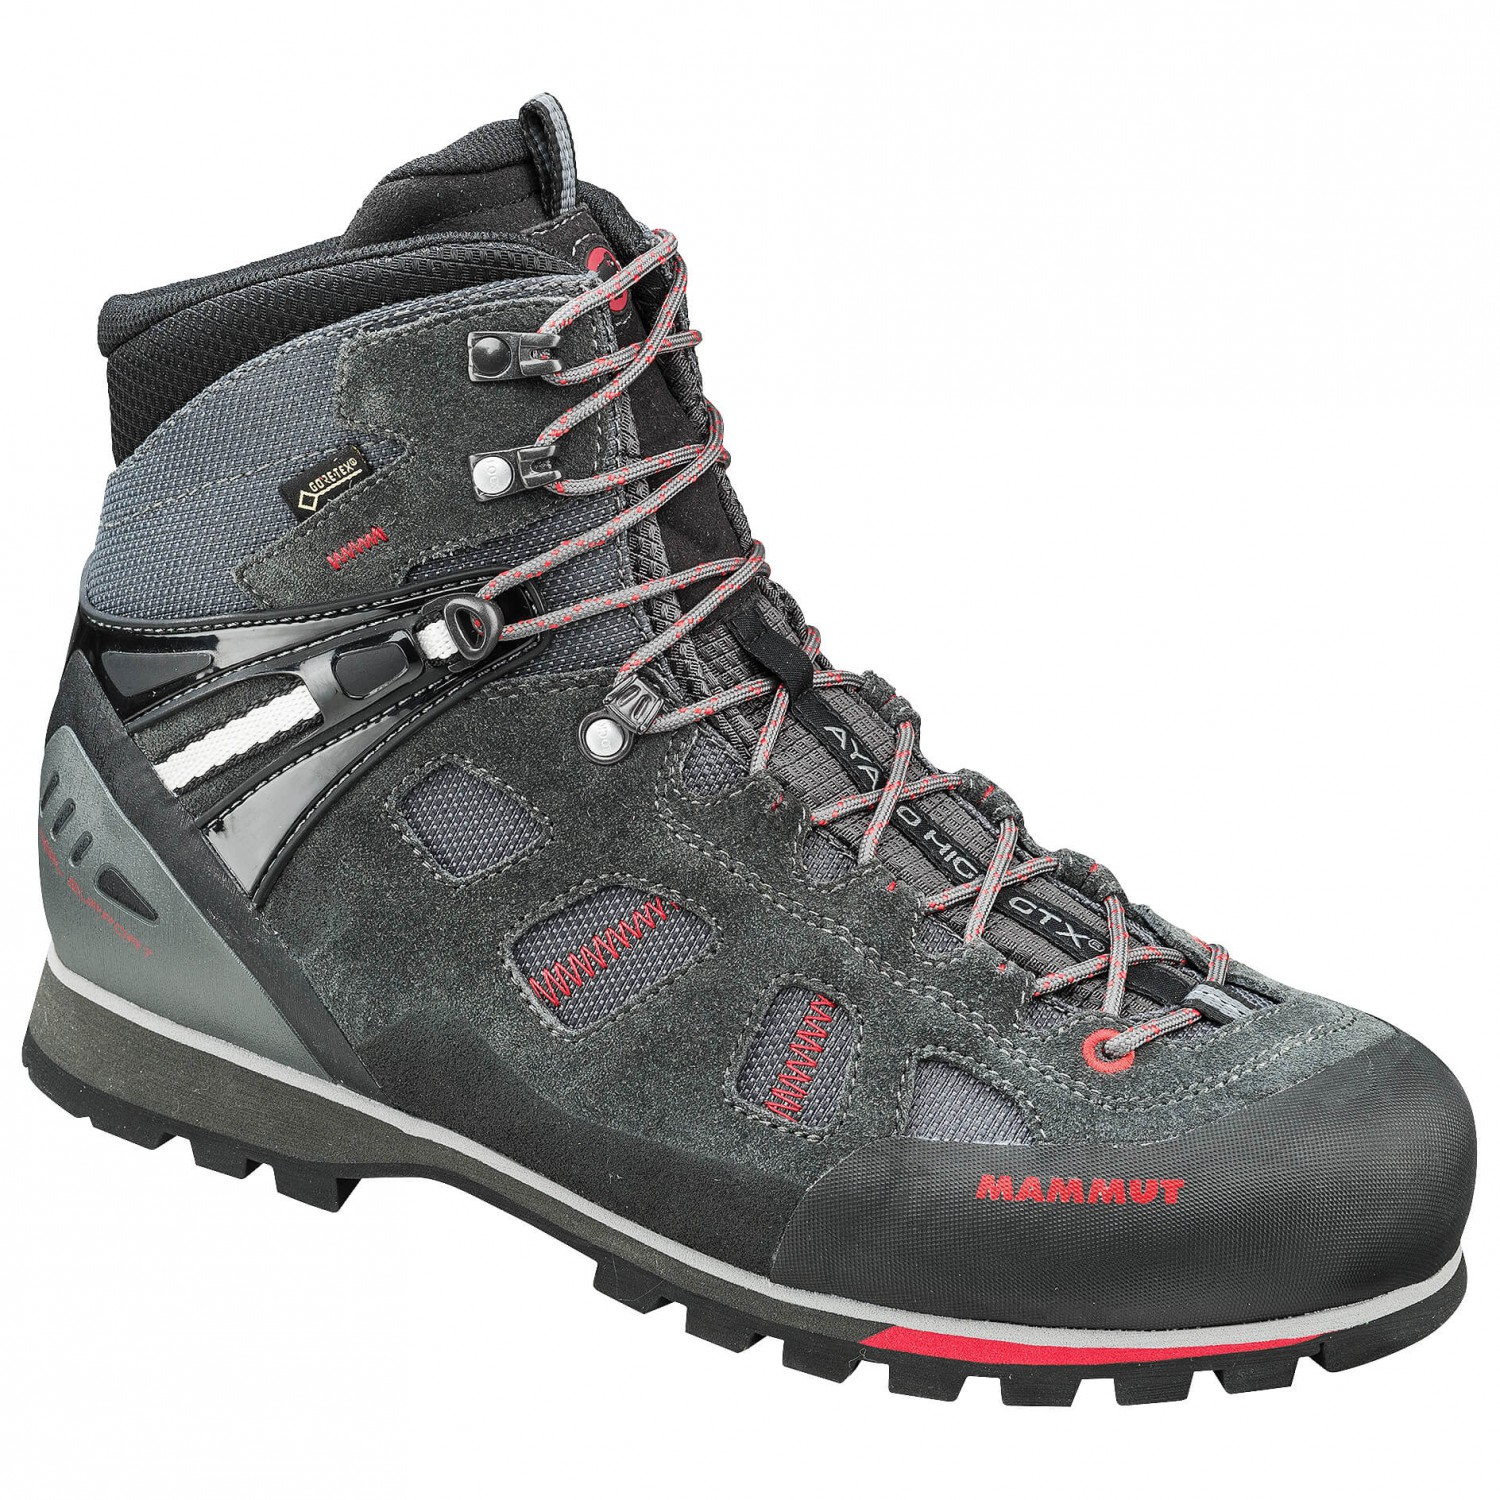 Mammut - Ayako High GTX - Approachschuhe Graphite / Inferno